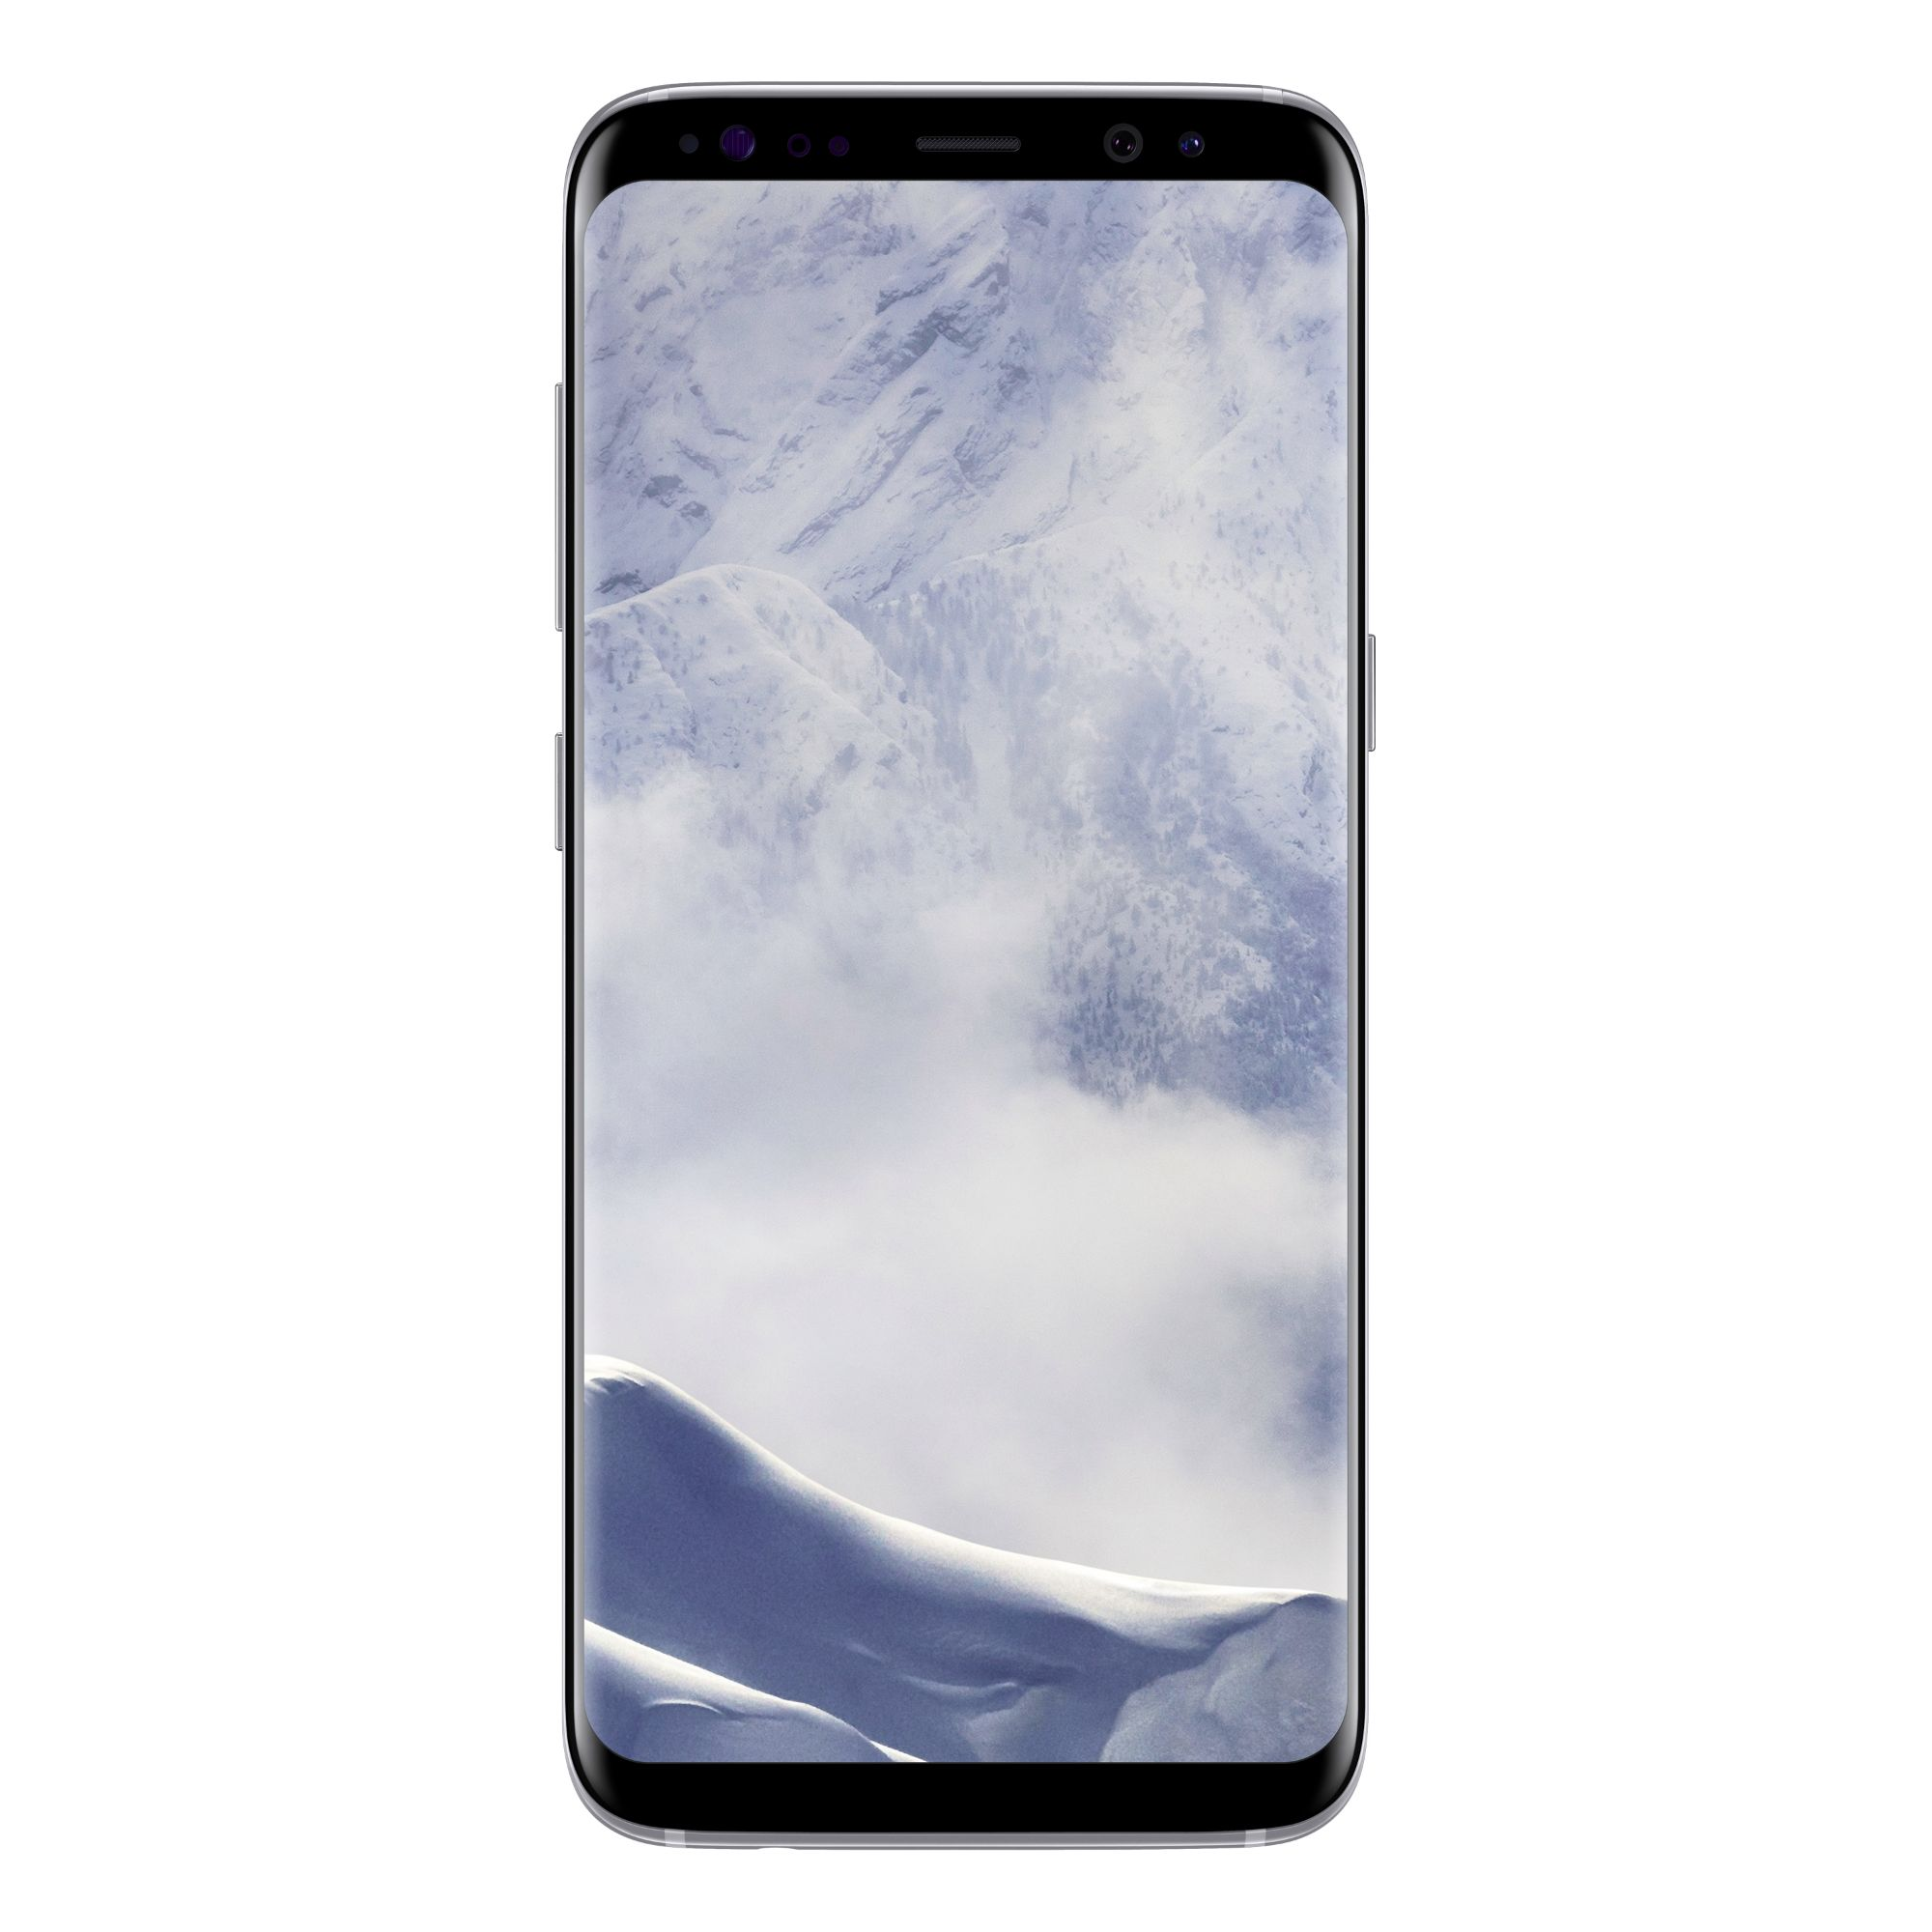 Samsung Galaxy S8 64GB (Verizon)